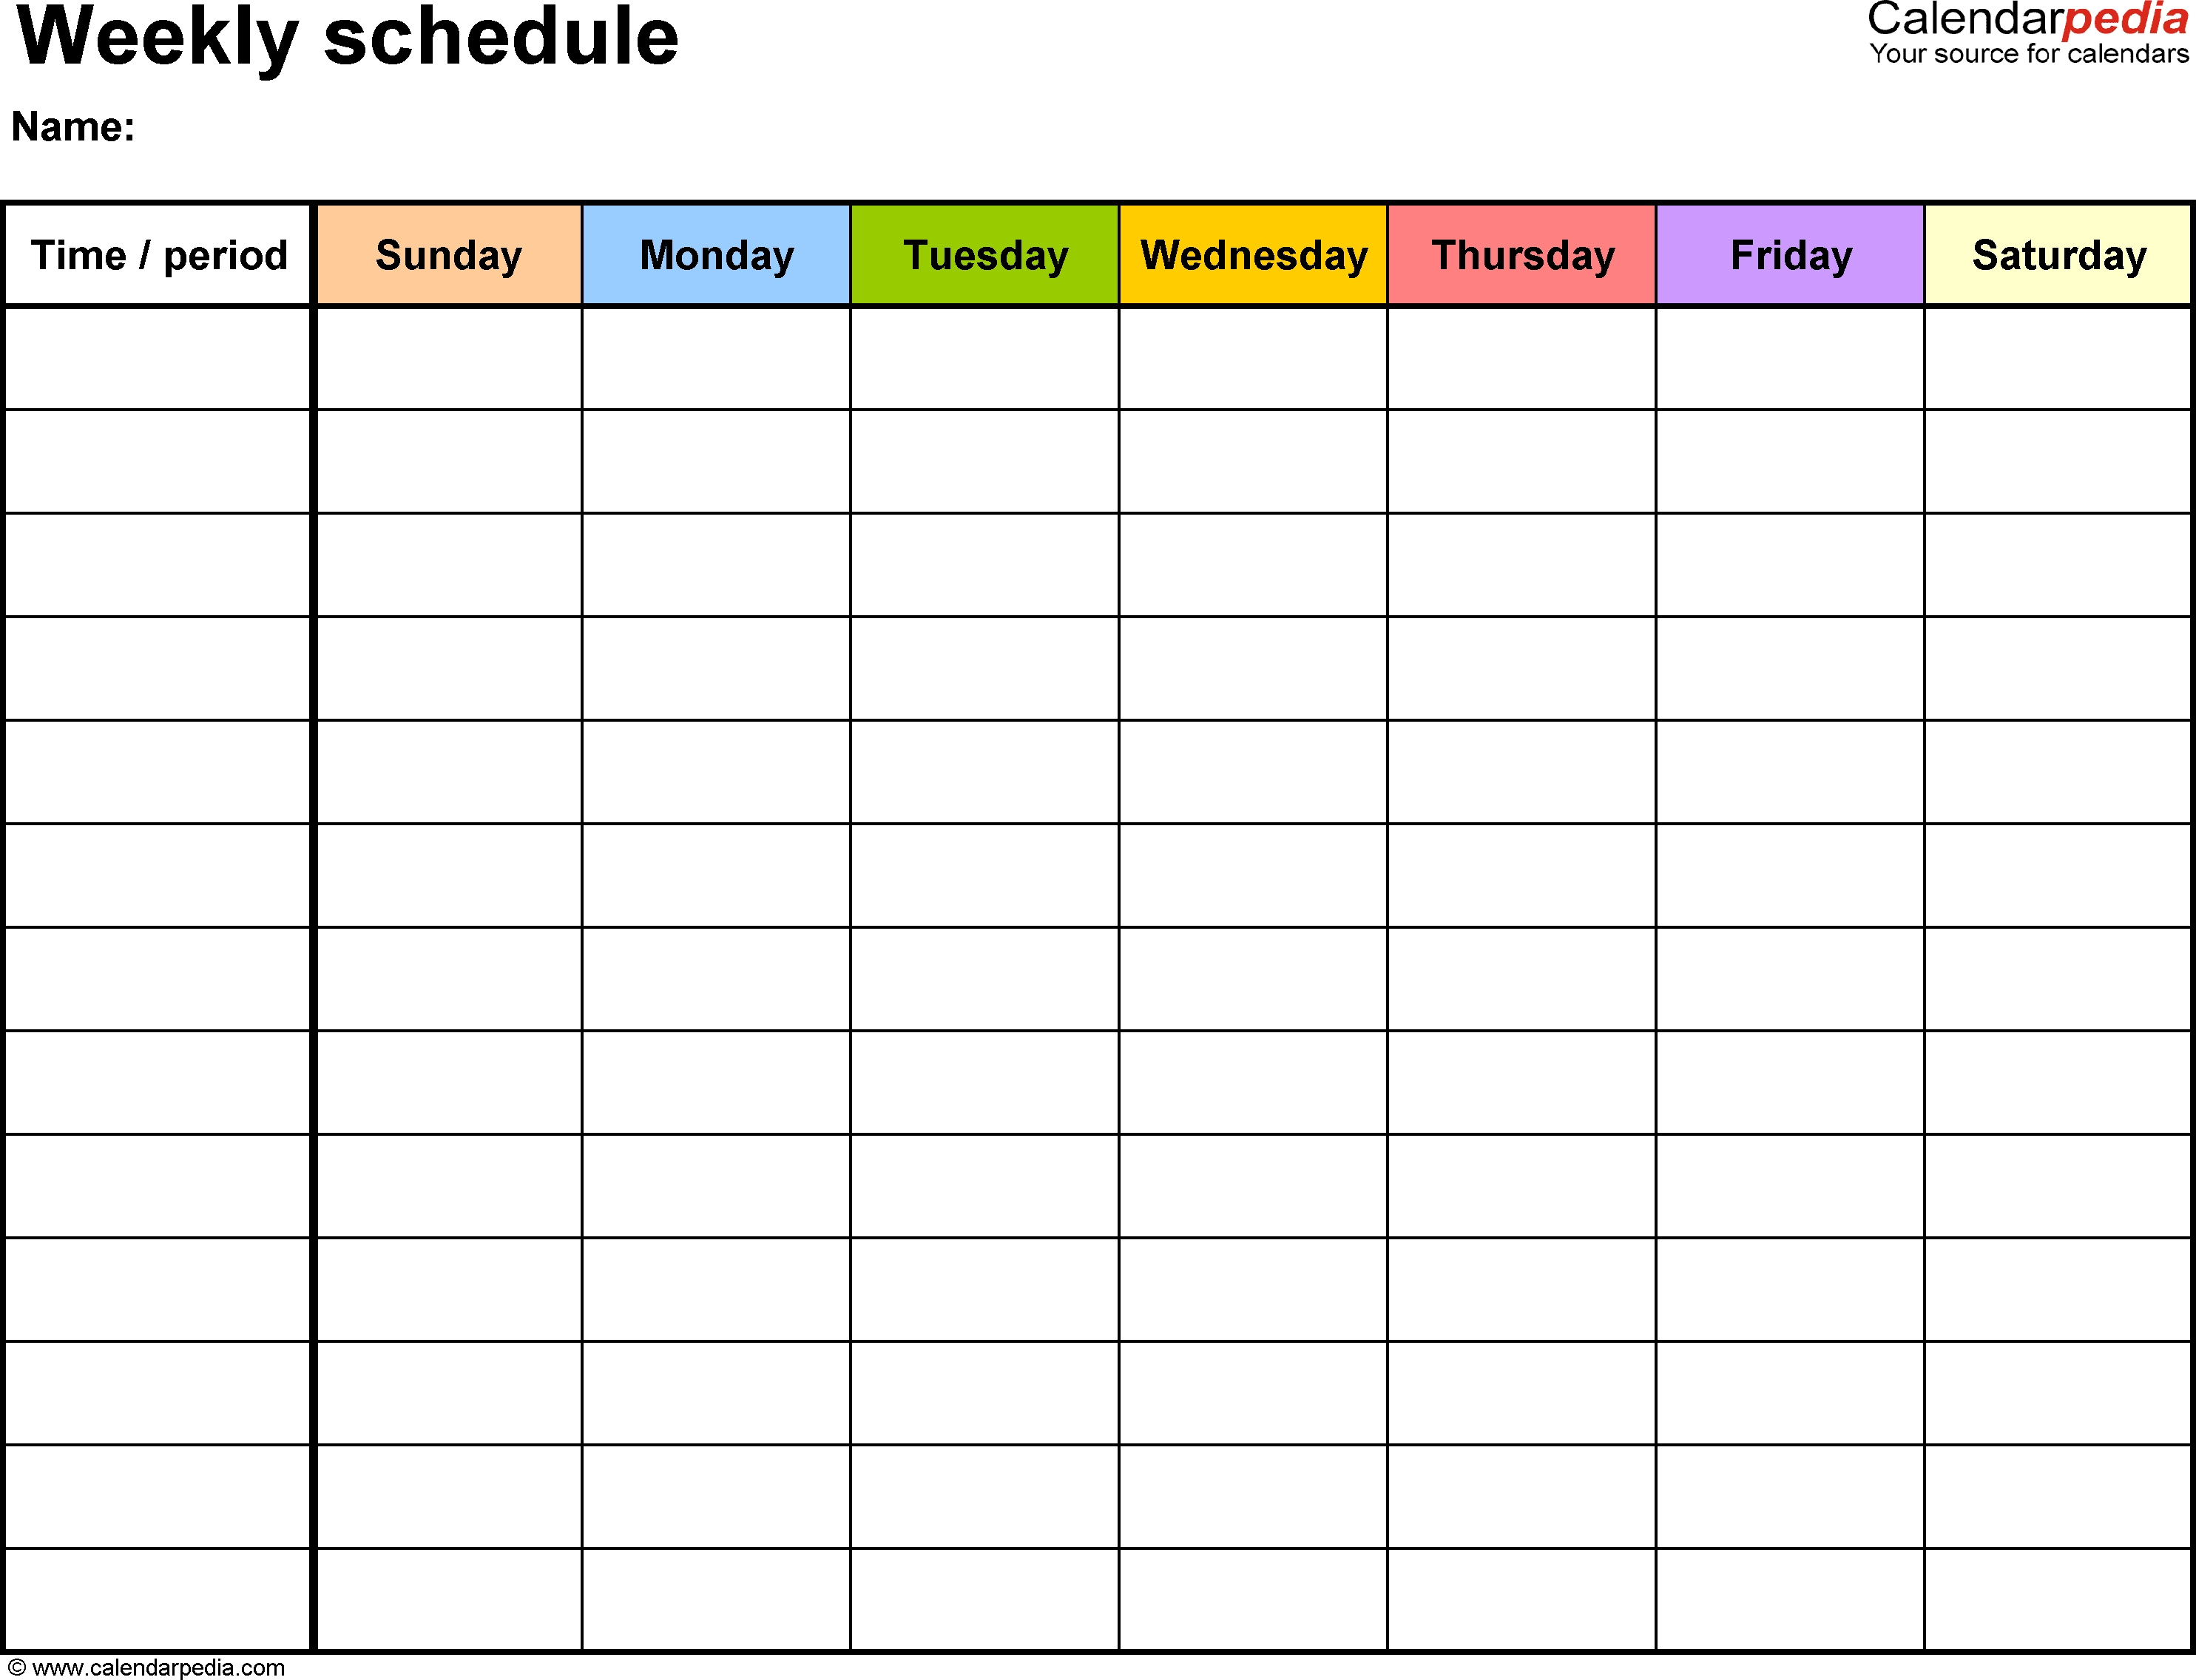 Free Weekly Schedule Templates For Excel - 18 Templates inside Free Day To Day Calendar